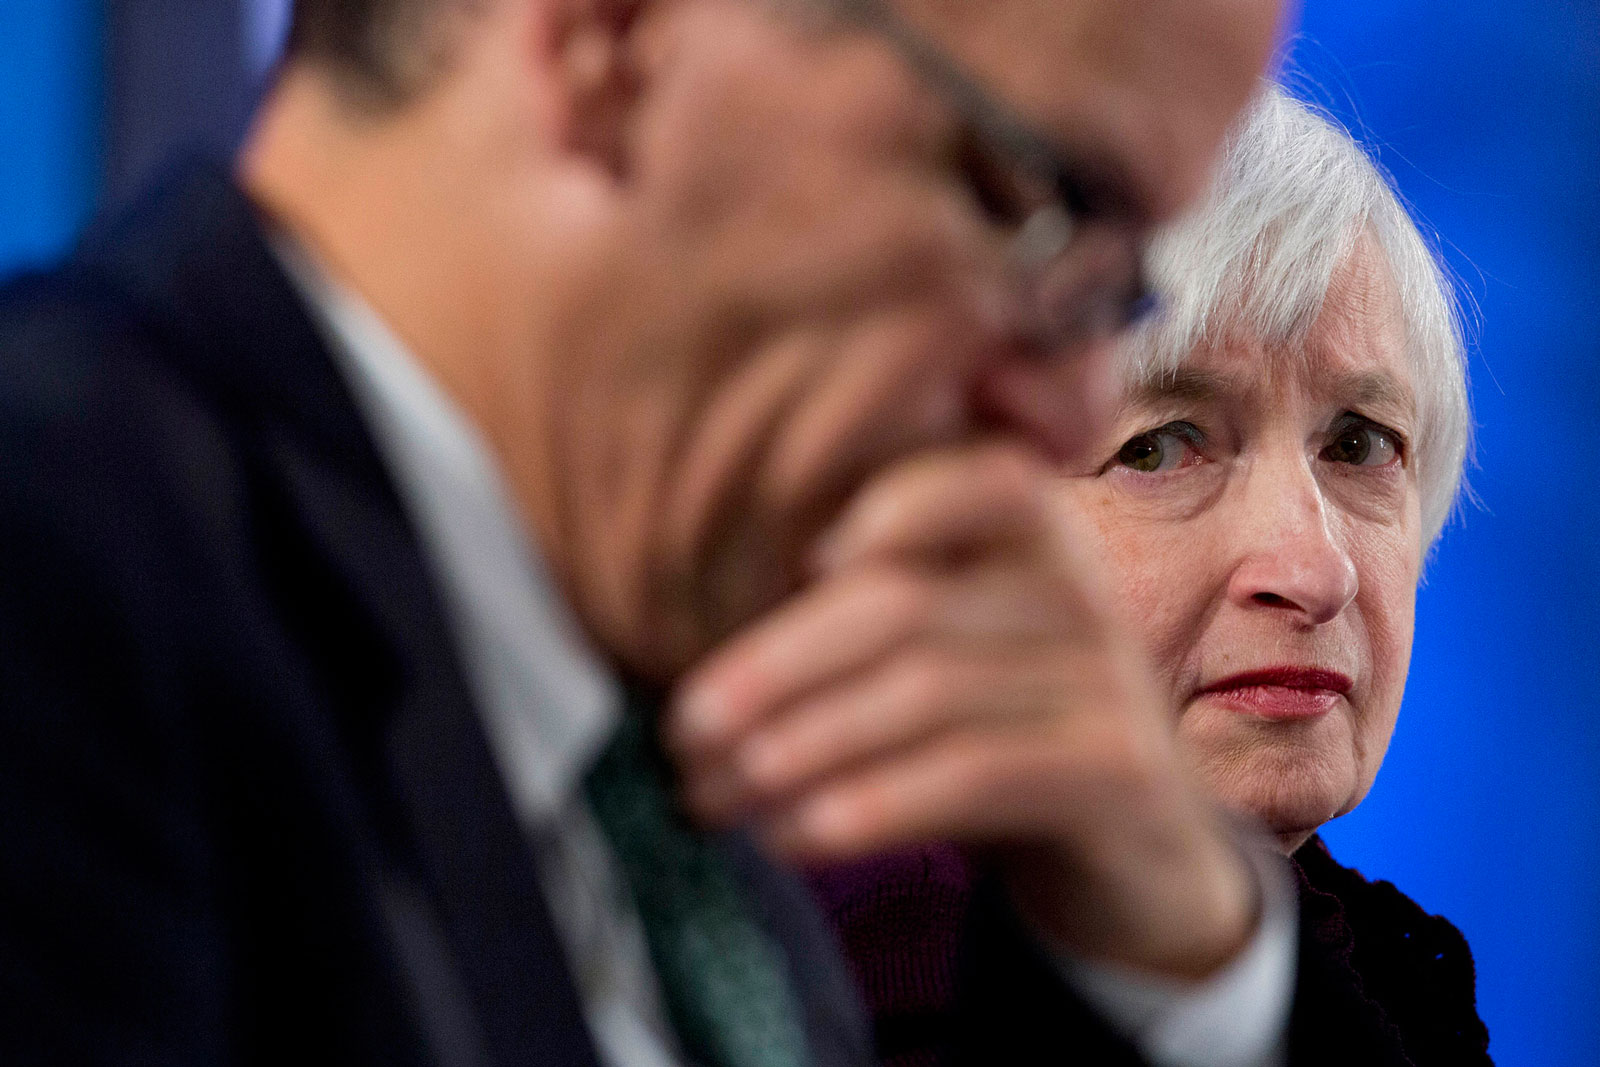 Janet Yellen, chair of the U.S. Federal Reserve, looks toward Thomas Perez, U.S. secretary of labor, during a Labor Hall of Fame Honor induction ceremony